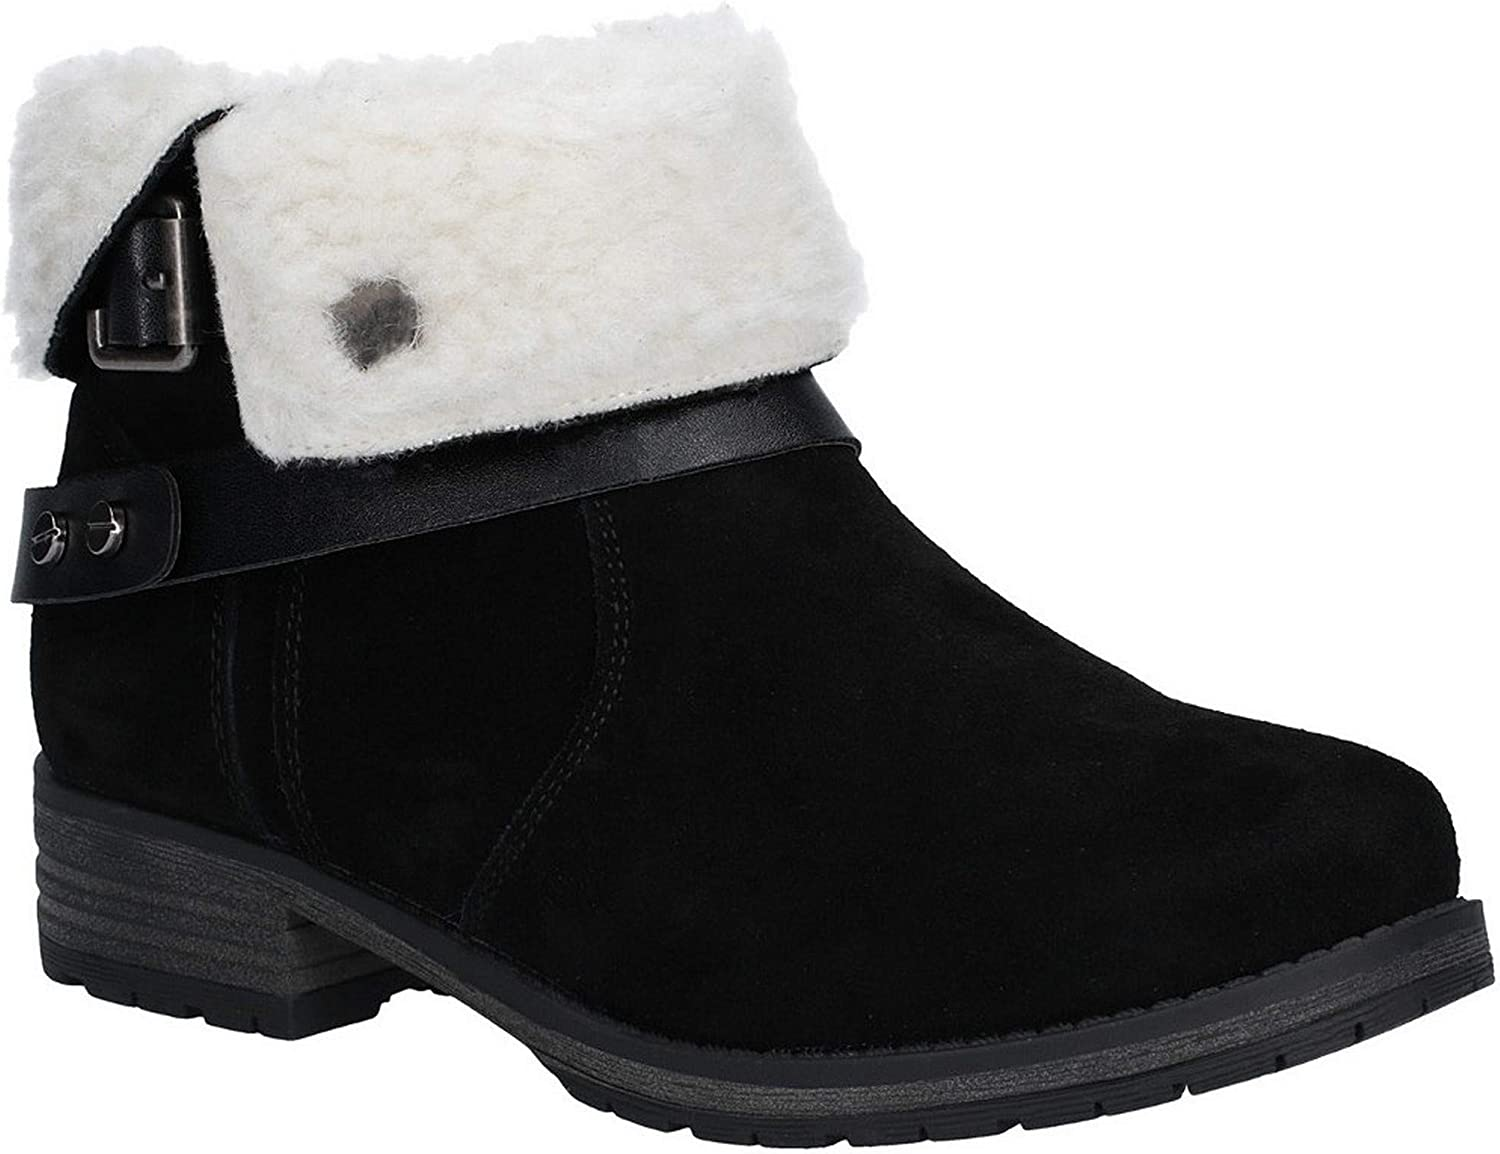 Fleet & Foster Womens Ladies Leather Soda Ankle Boots